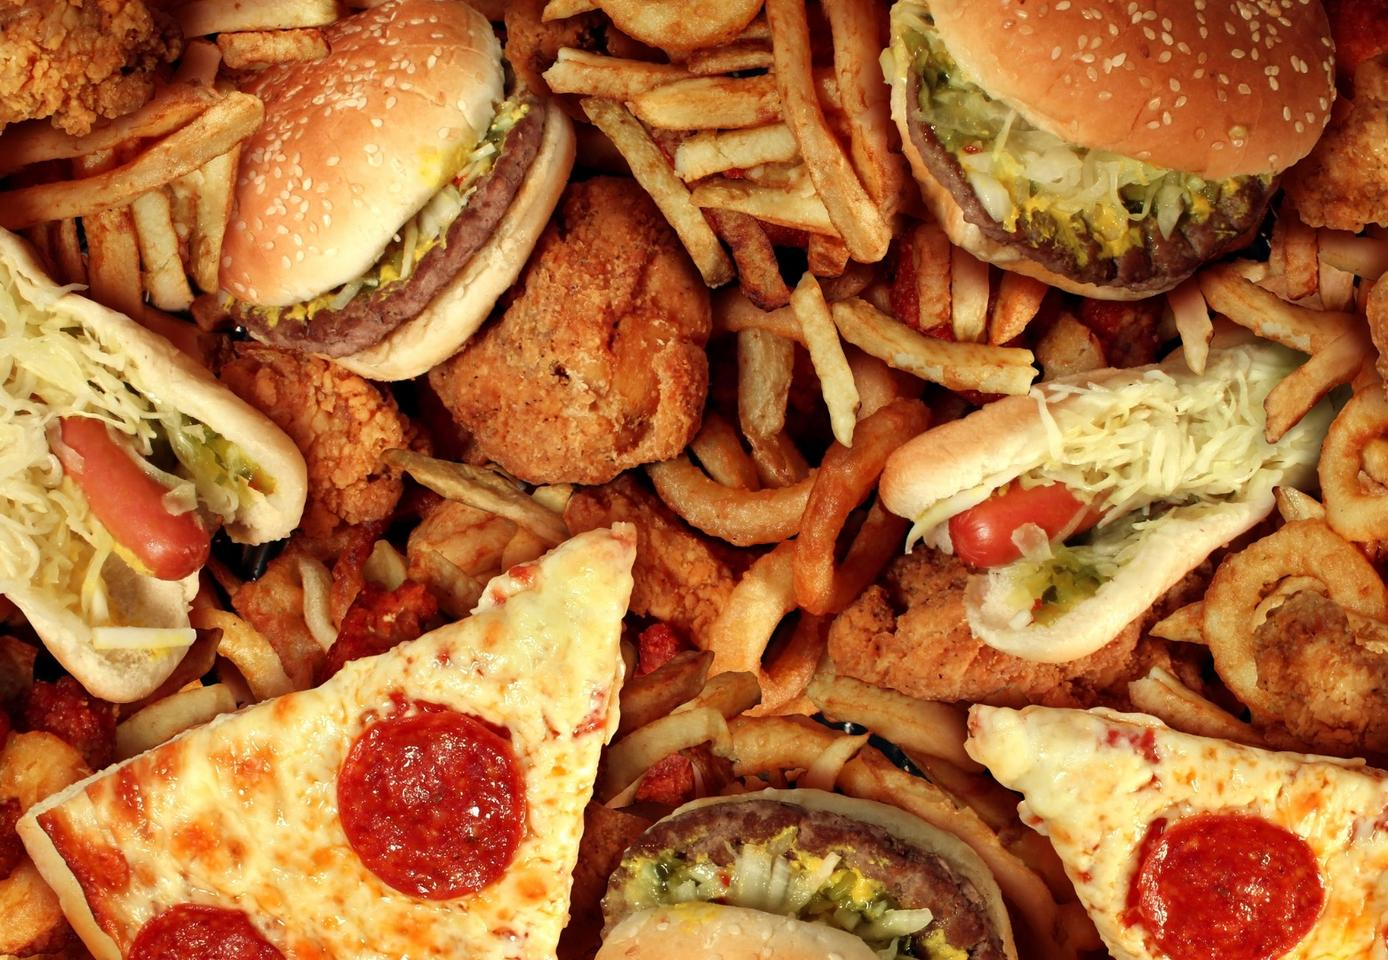 New research has discovered a gut hormone, present in higher levels in obese people, that blocks the activity of appetite-suppressing signals from the brain